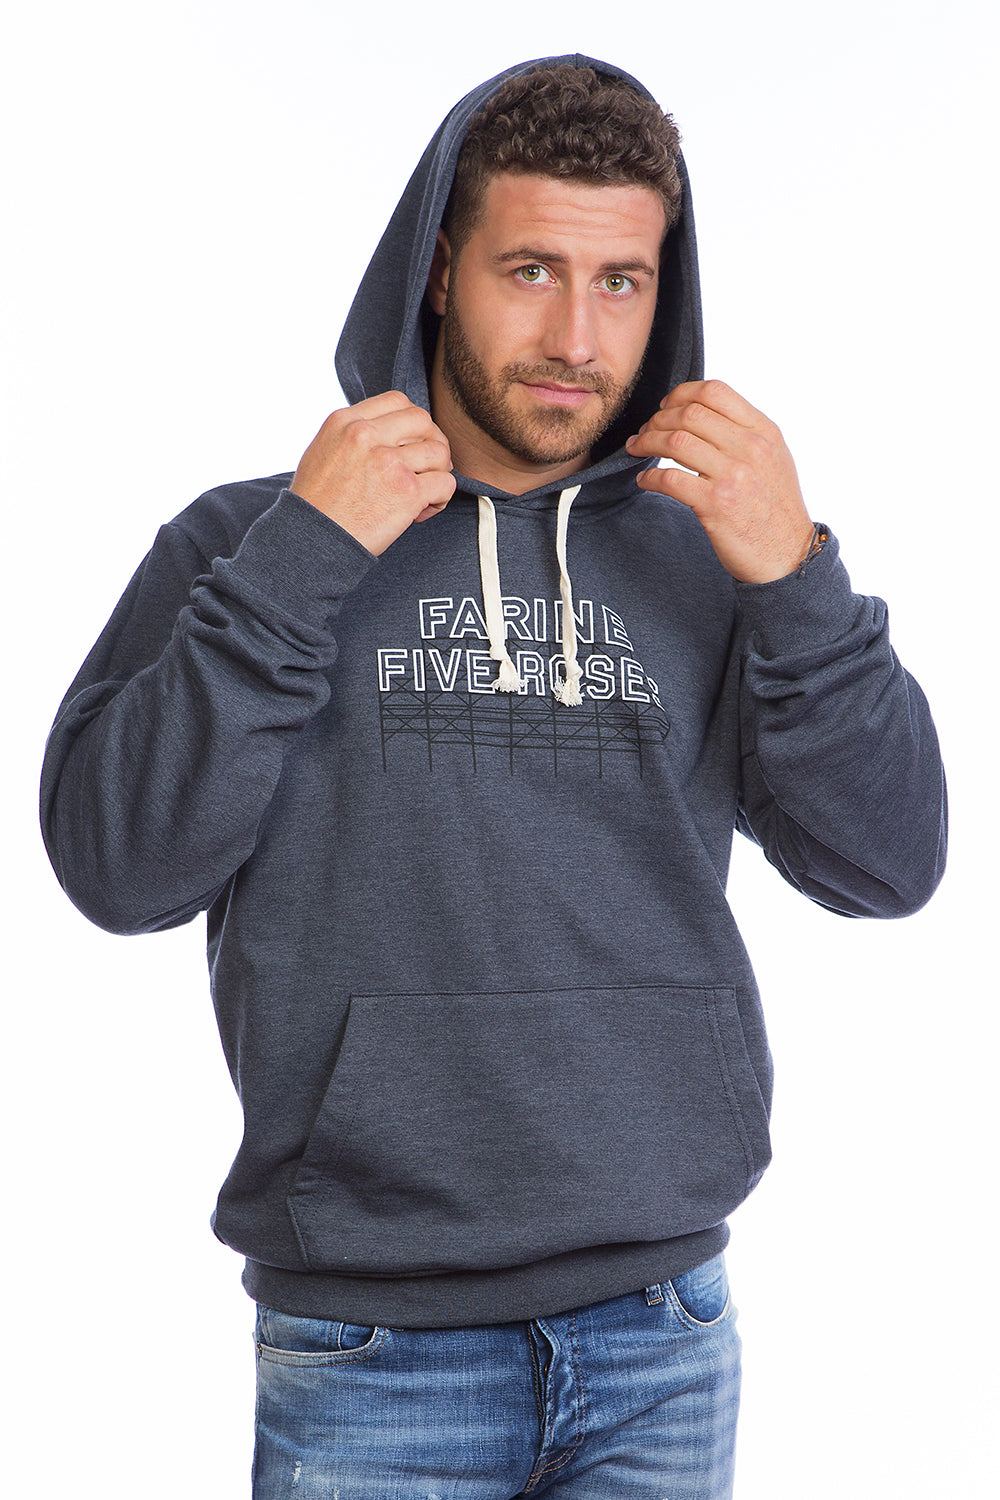 Hoodie Chandail Capuchon Farine Five Roses Montreal Kangourou. Made in Canada